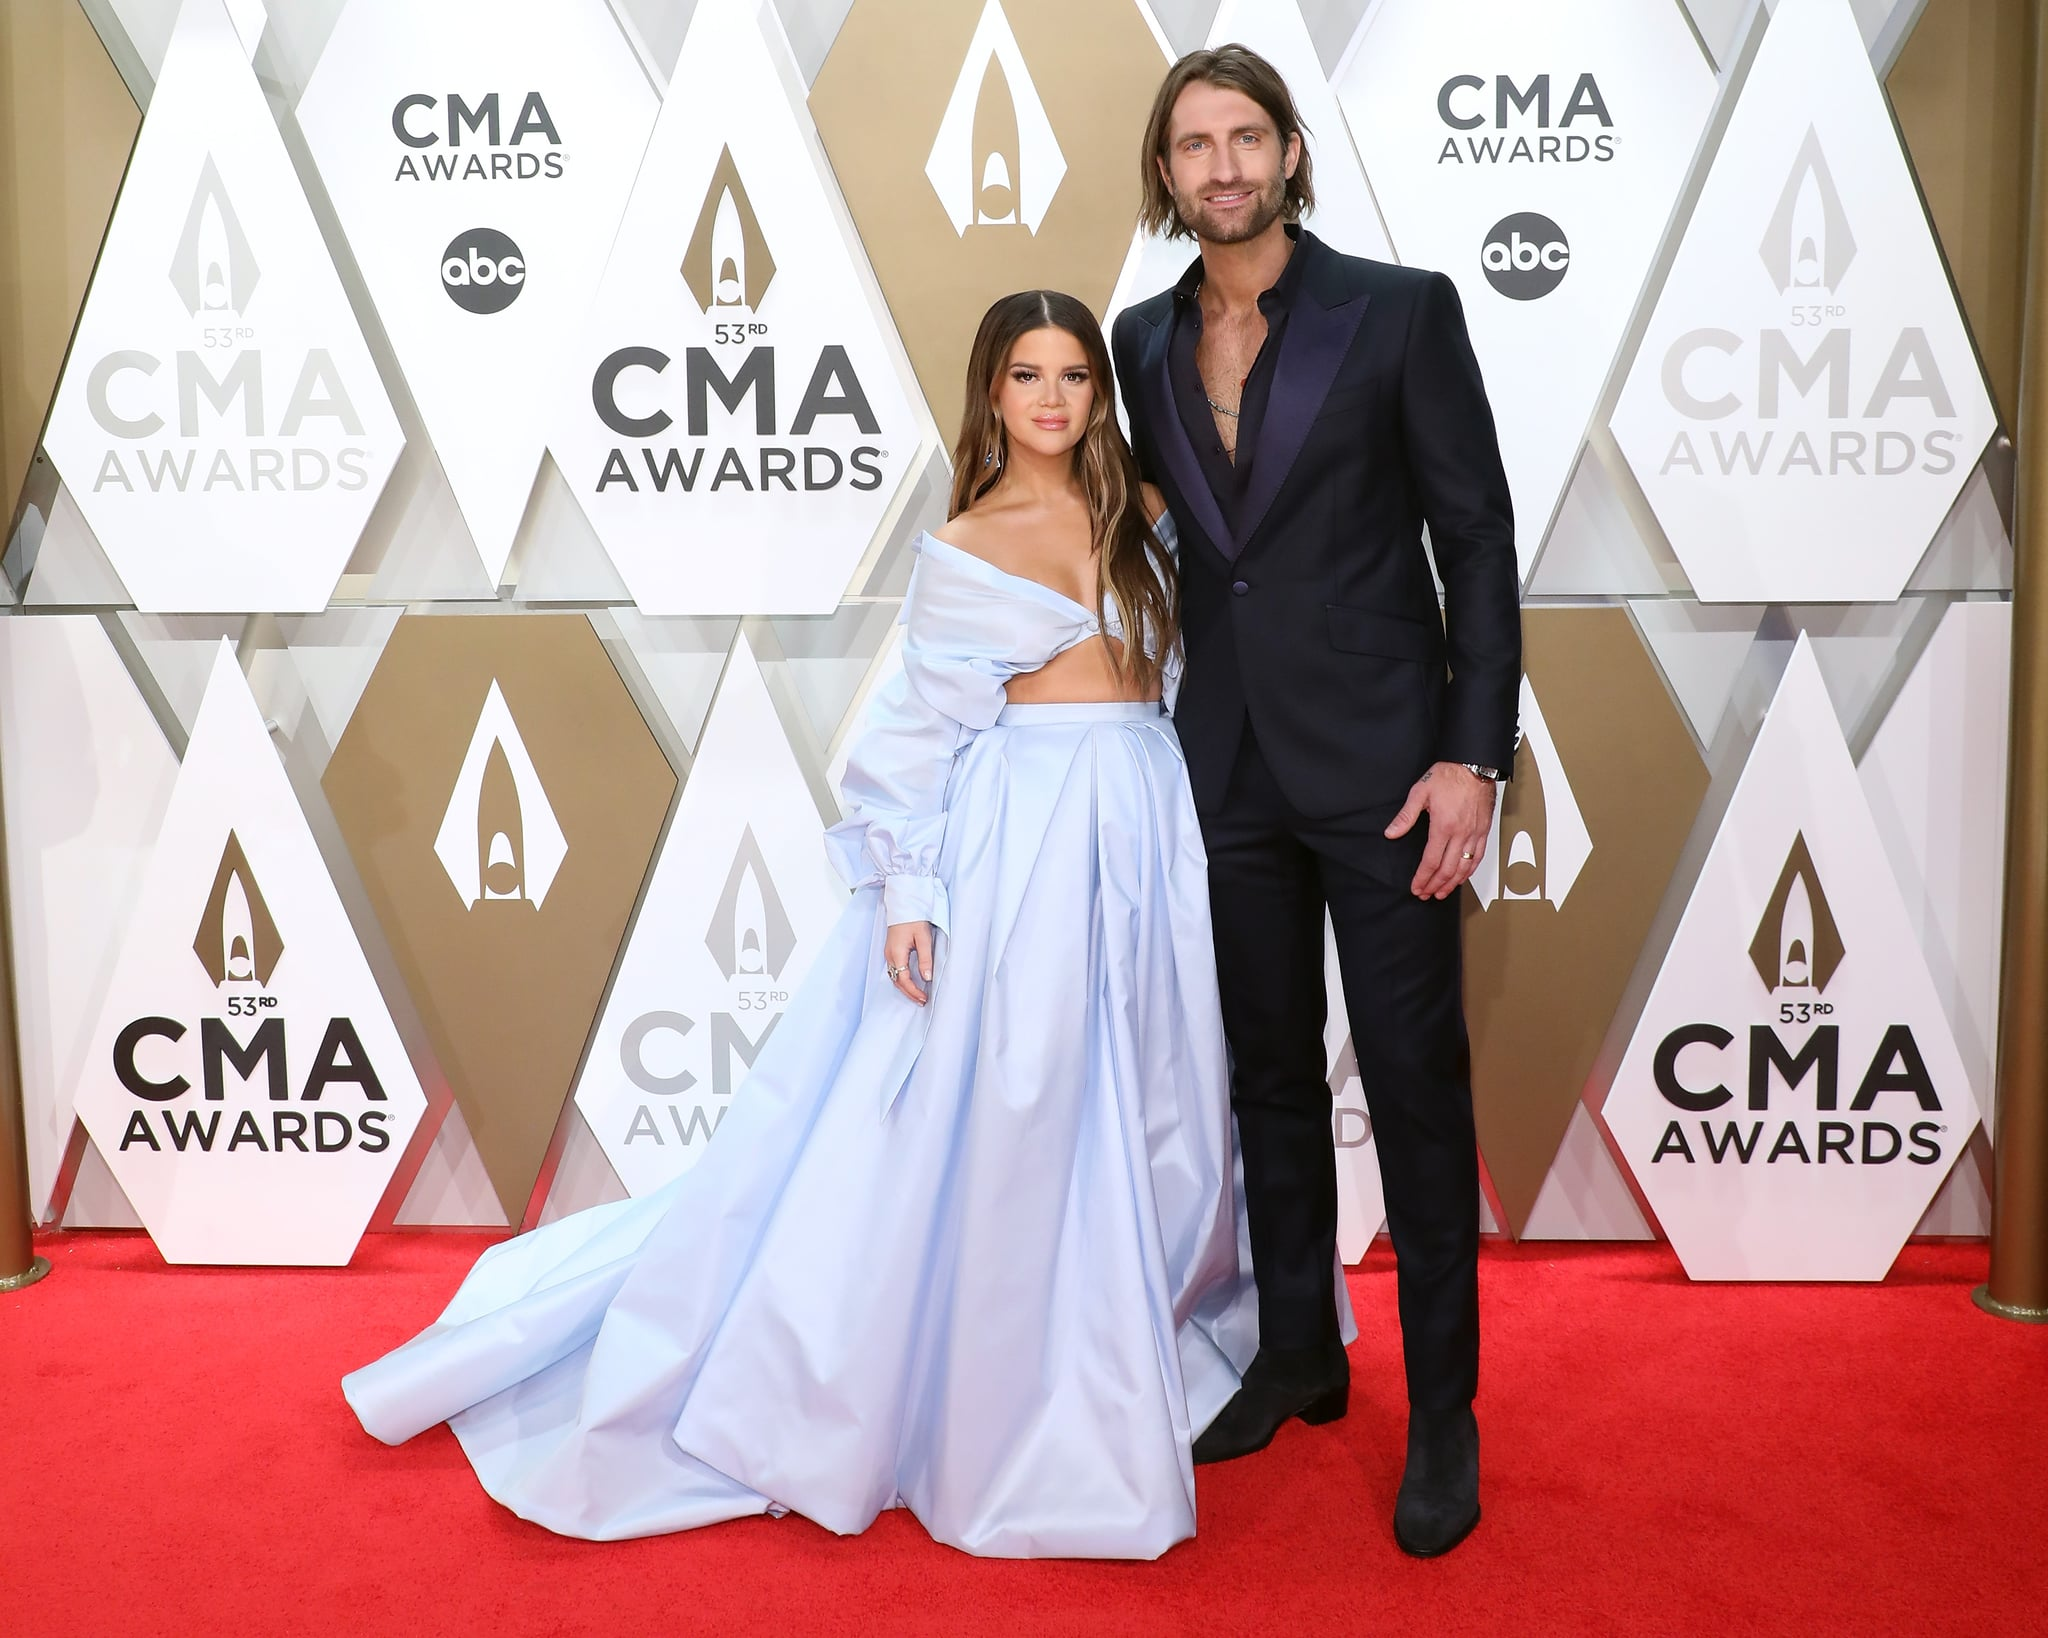 NASHVILLE, TENNESSEE - NOVEMBER 13: (FOR EDITORIAL USE ONLY)  Maren Morris and Ryan Hurd attend the 53nd annual CMA Awards at Bridgestone Arena on November 13, 2019 in Nashville, Tennessee. (Photo by Taylor Hill/Getty Images)